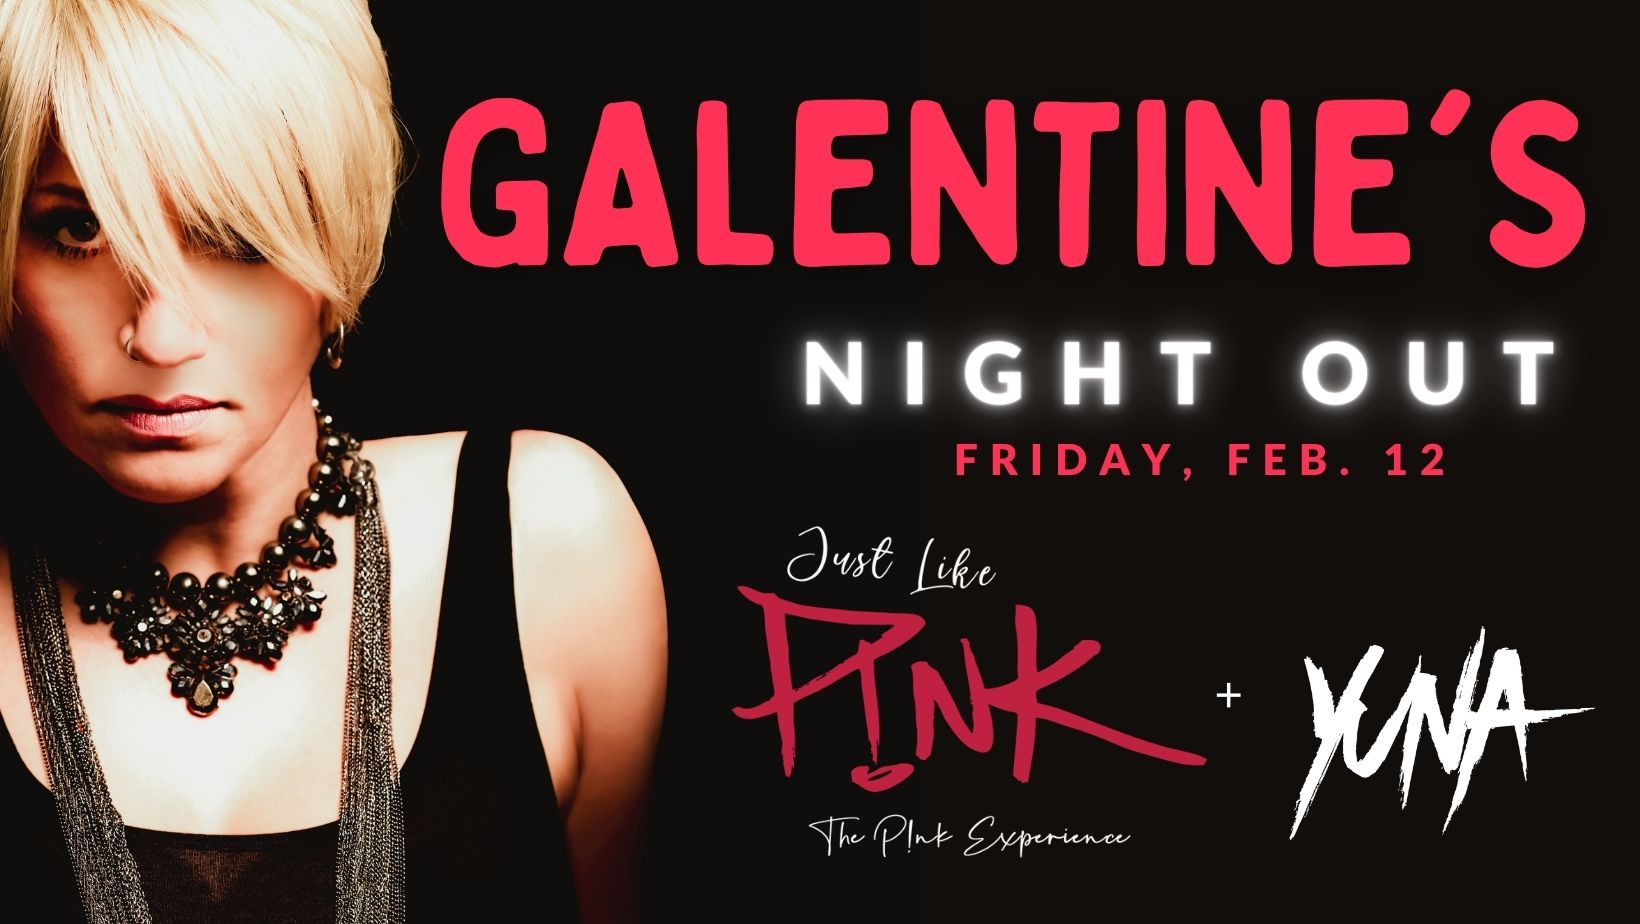 Promo image of Galentine's Night Out with Just Like P!nk